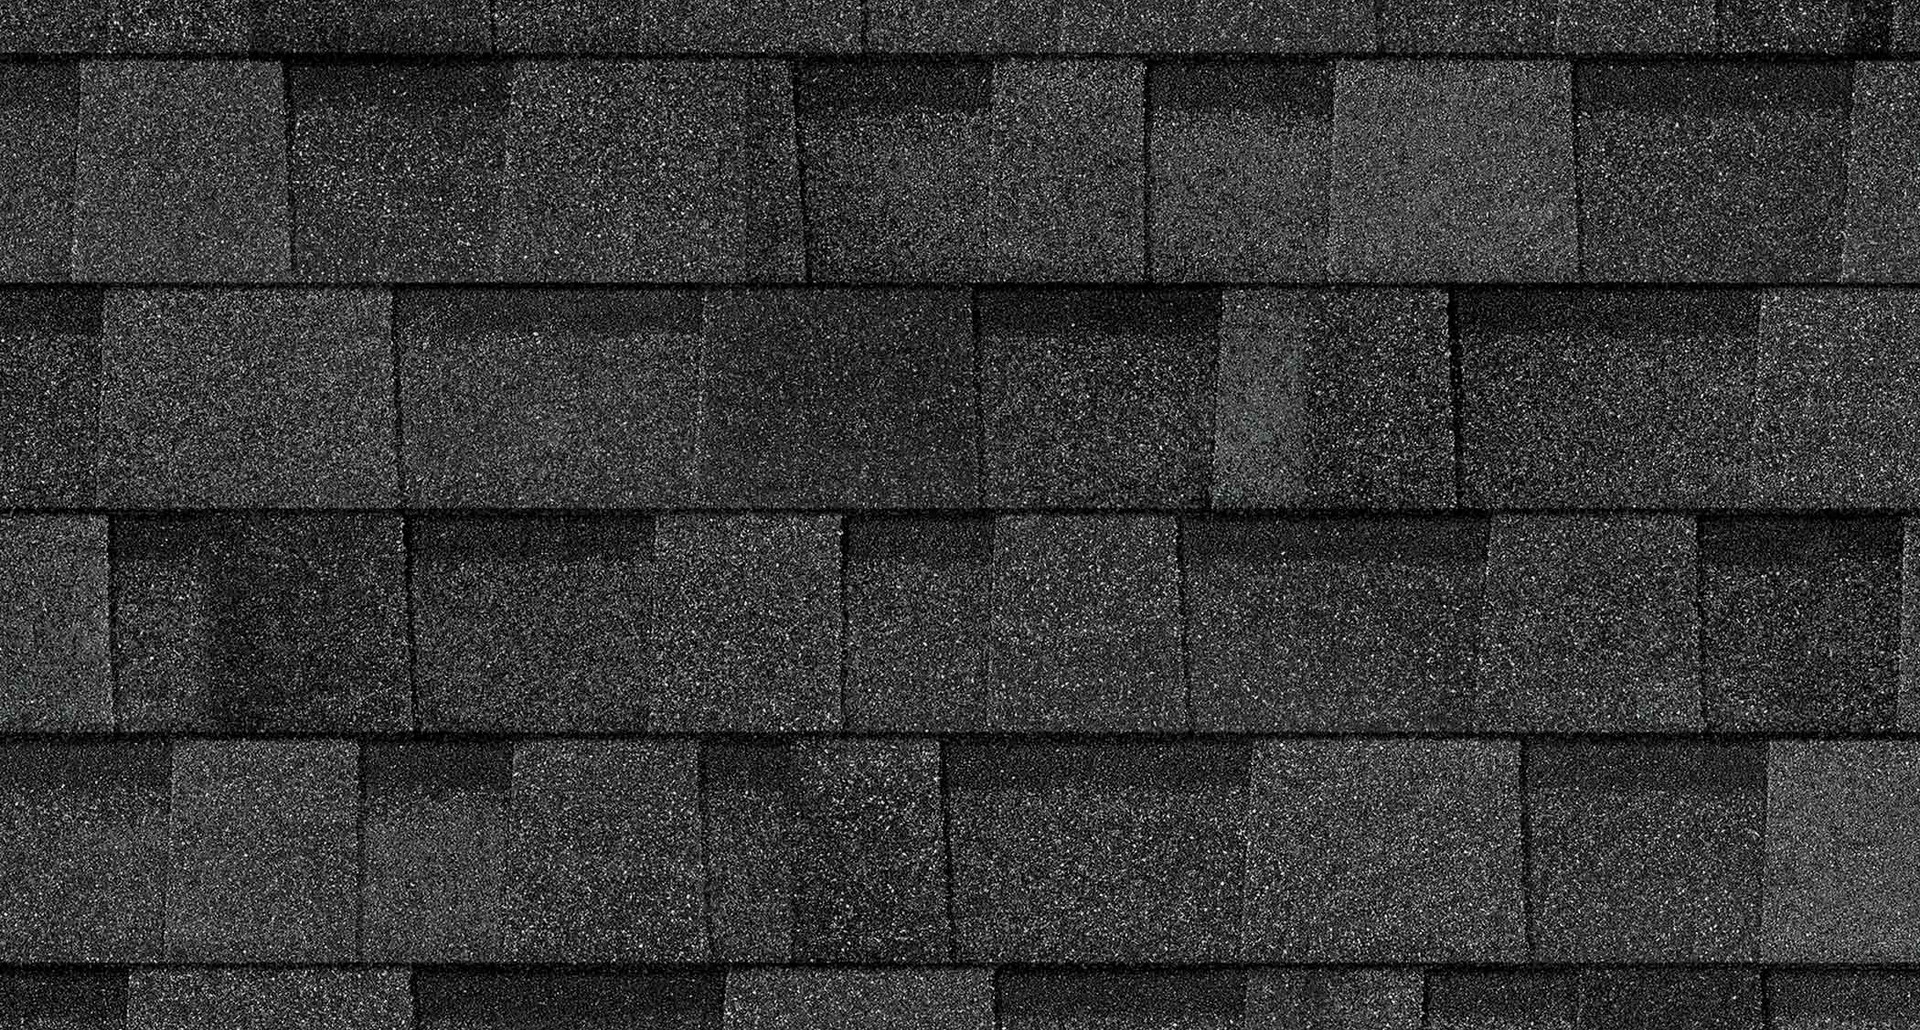 Owens Corning OakRidge Twilight Black